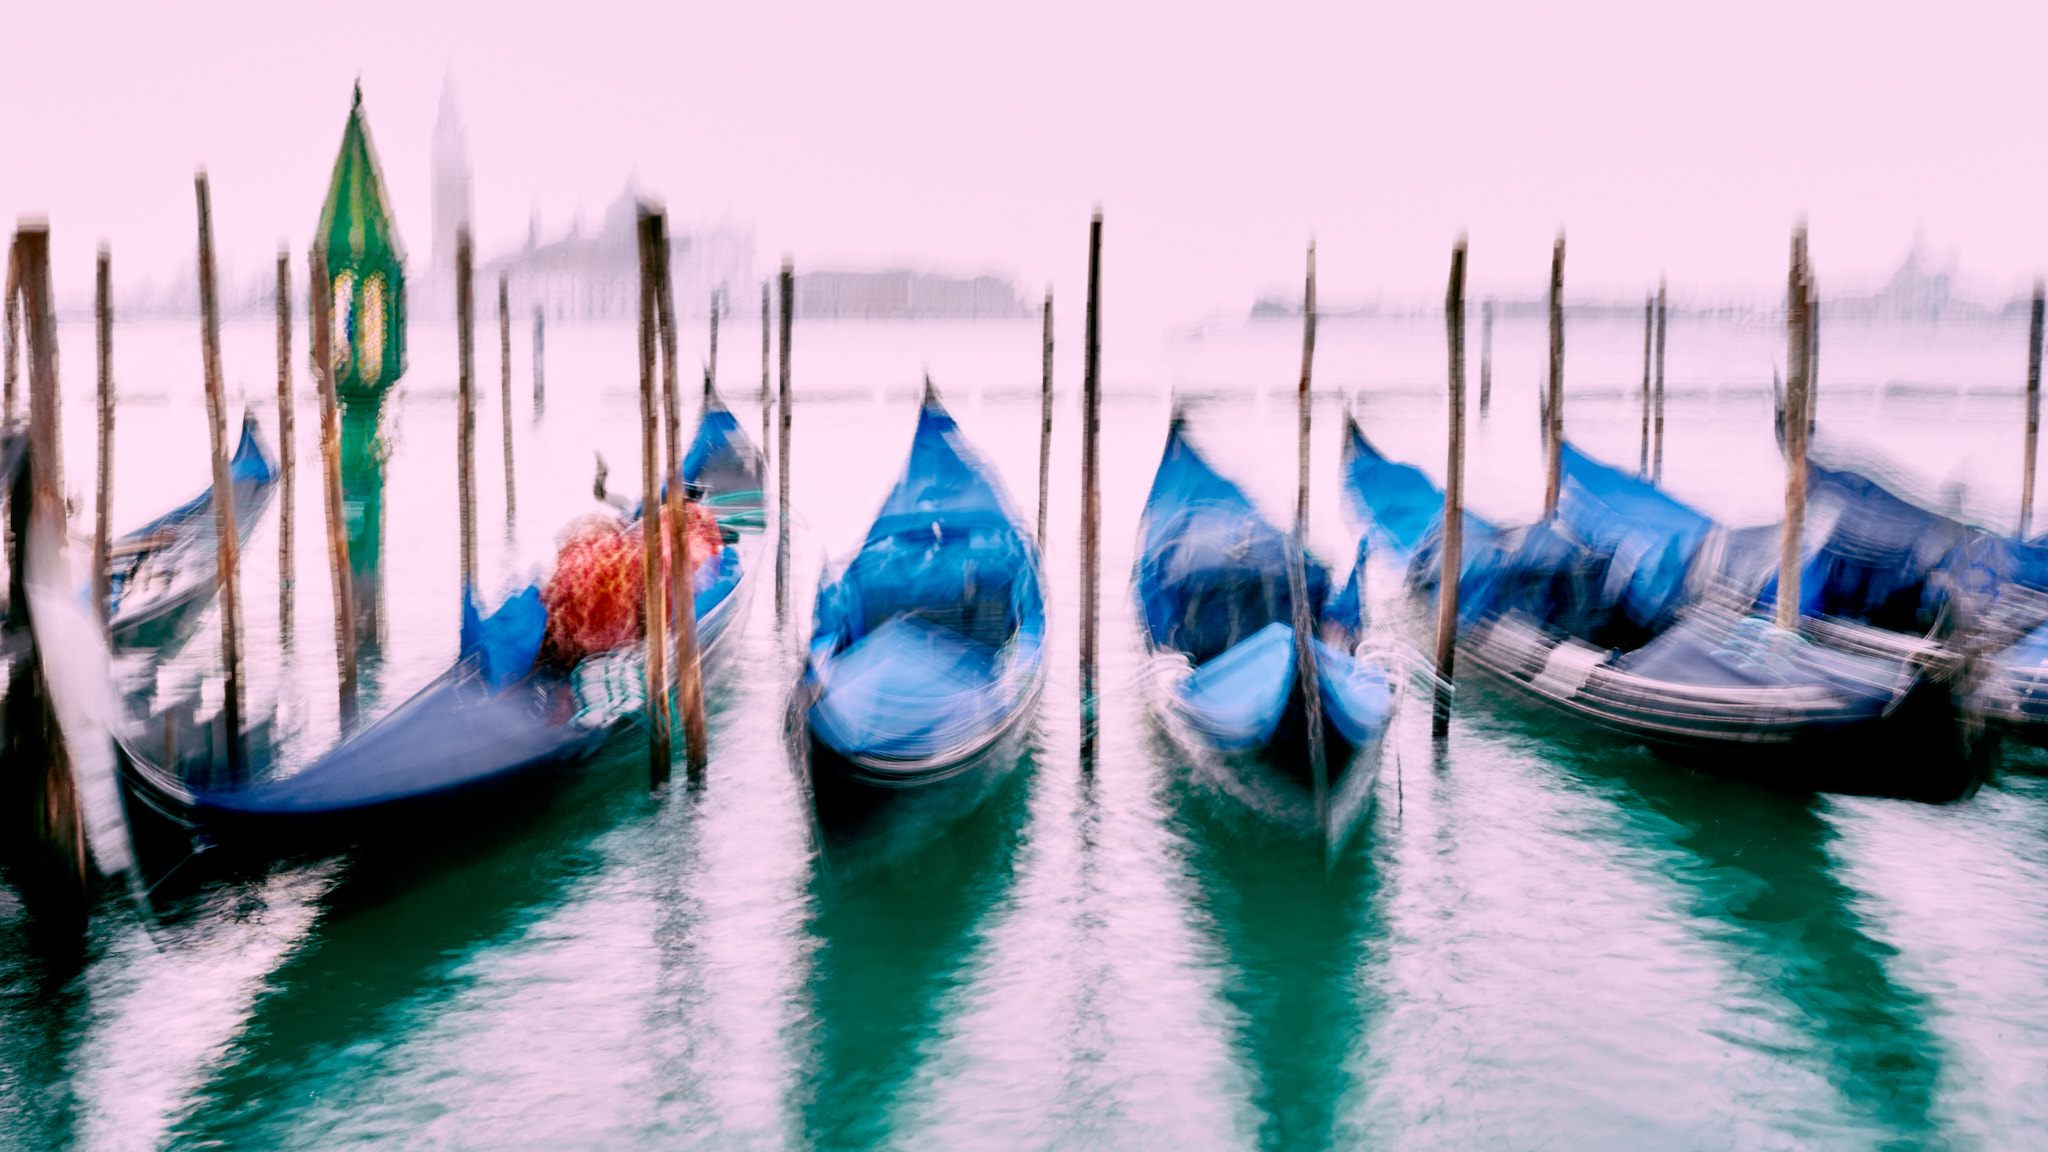 Gondolas in Motion